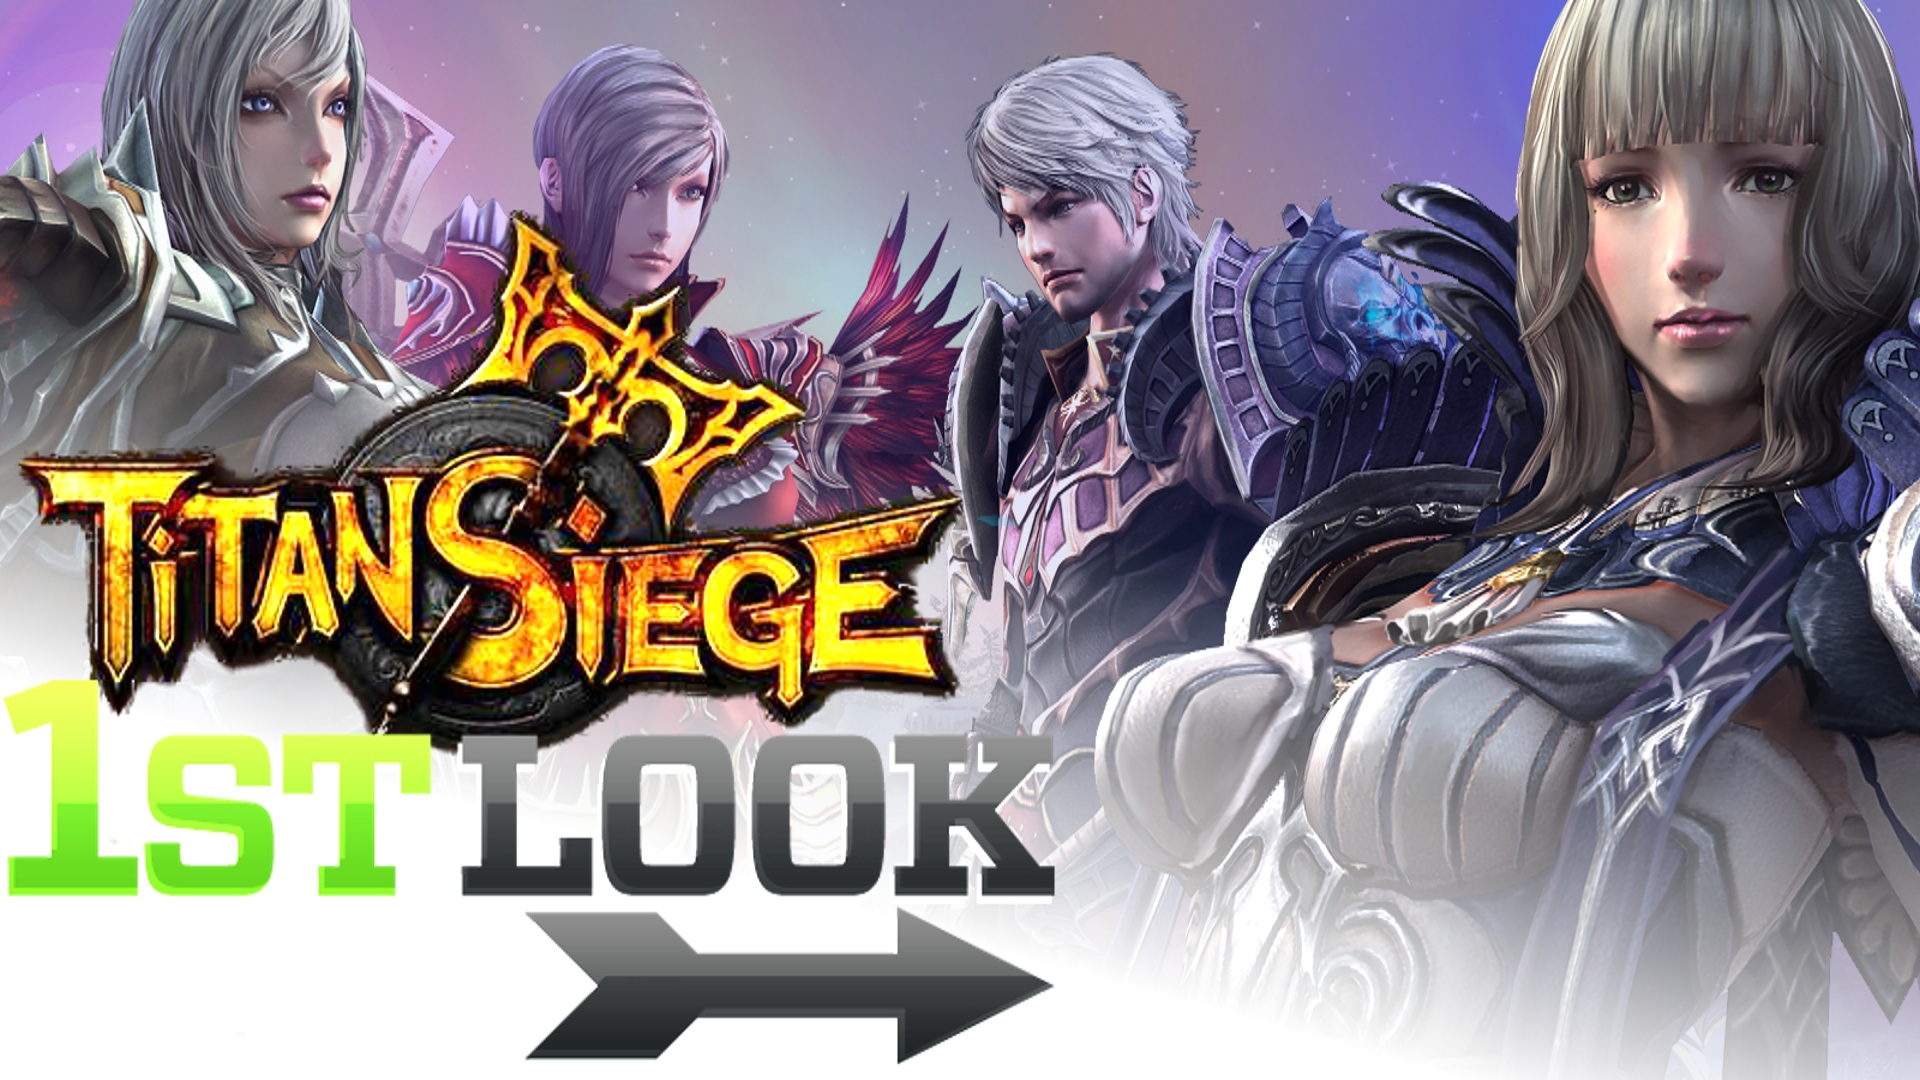 Titan Siege - First Look